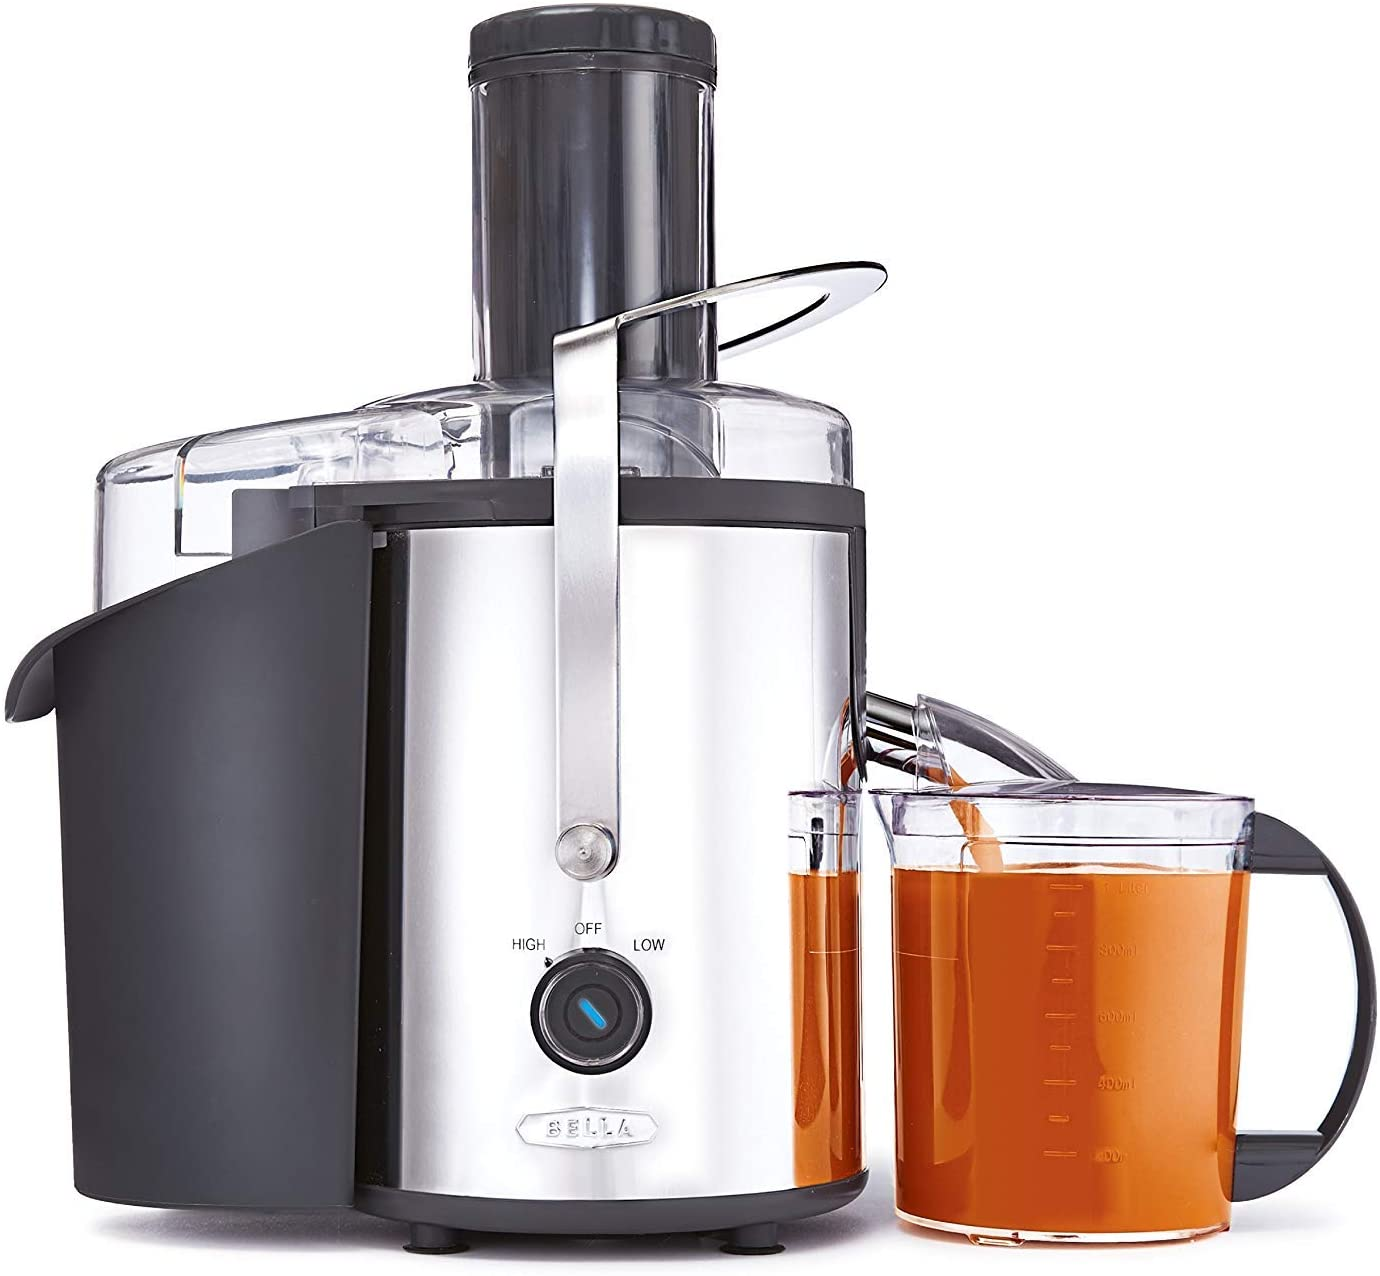 BELLA High Power Juice Extractor, 2 Speed Motor, Juicer, Large 3